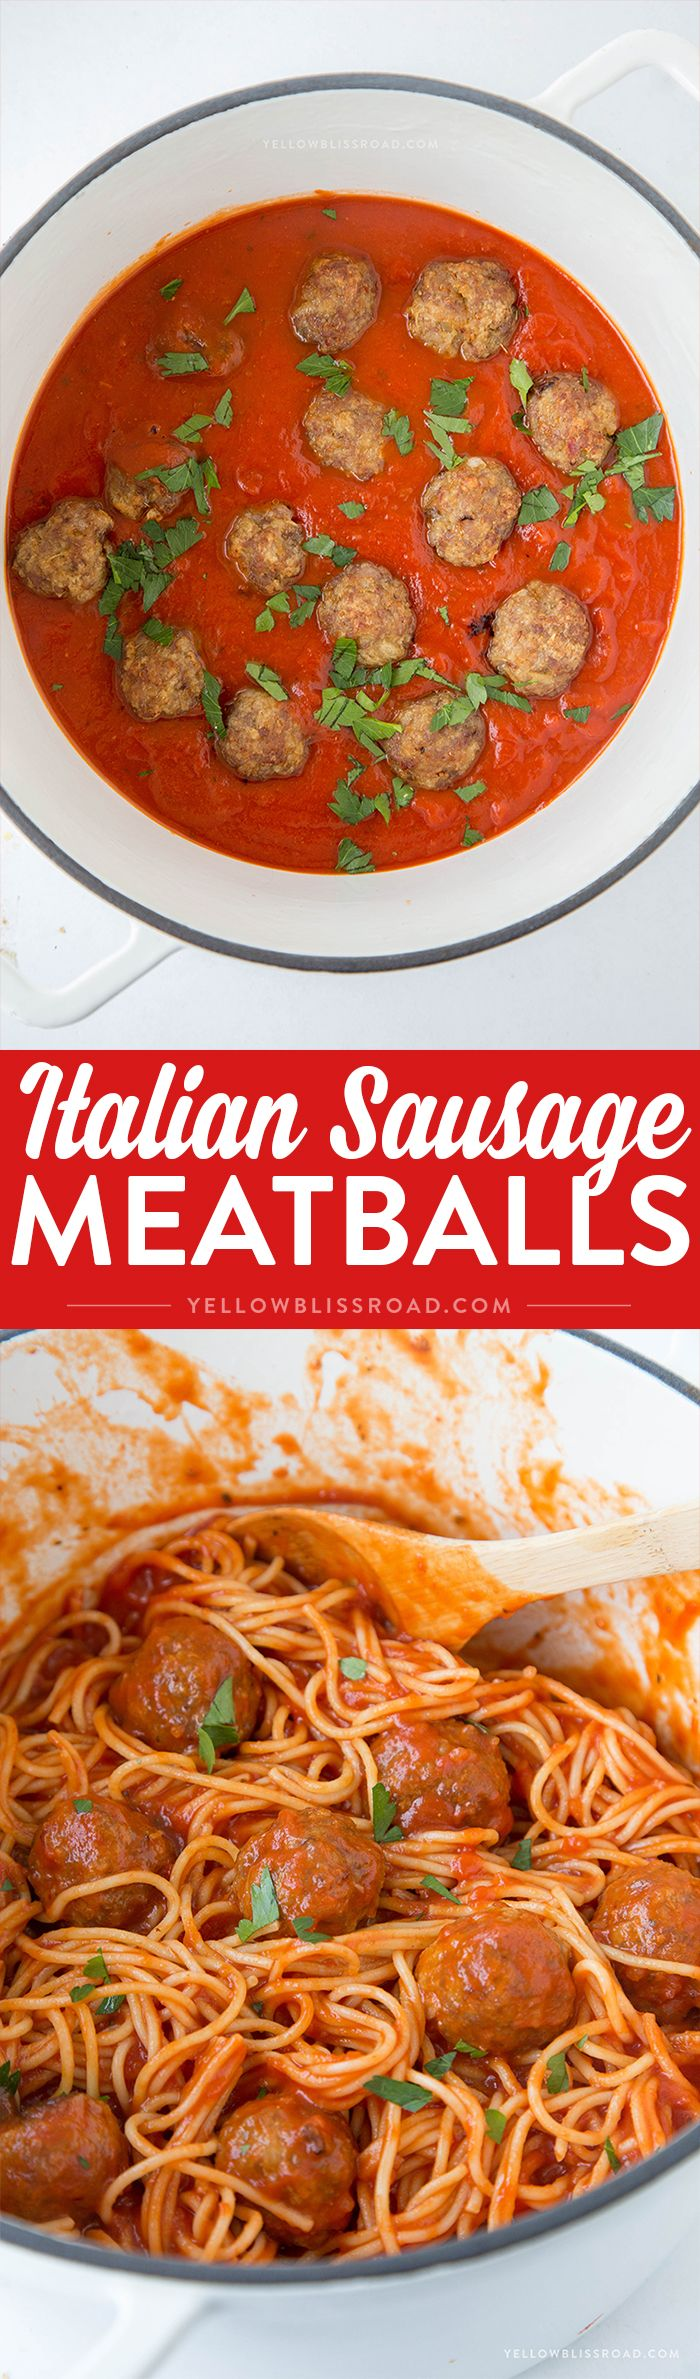 Baked Italian Sausage Meatballs - Just a few ingredients turn spaghetti night…